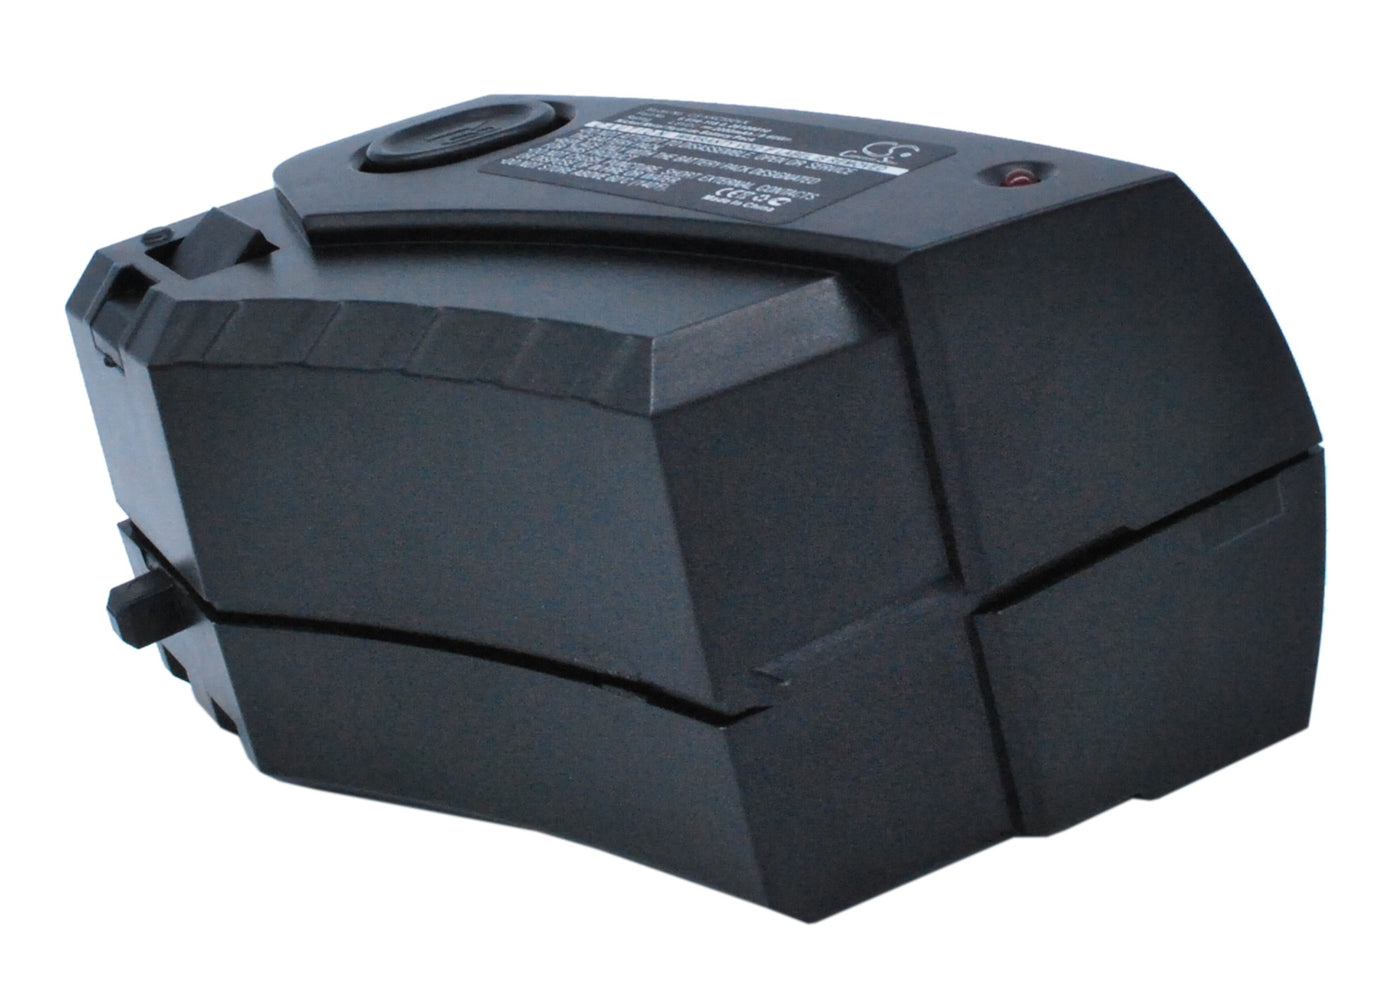 CS-KRC550VX Cameron Sino Battery